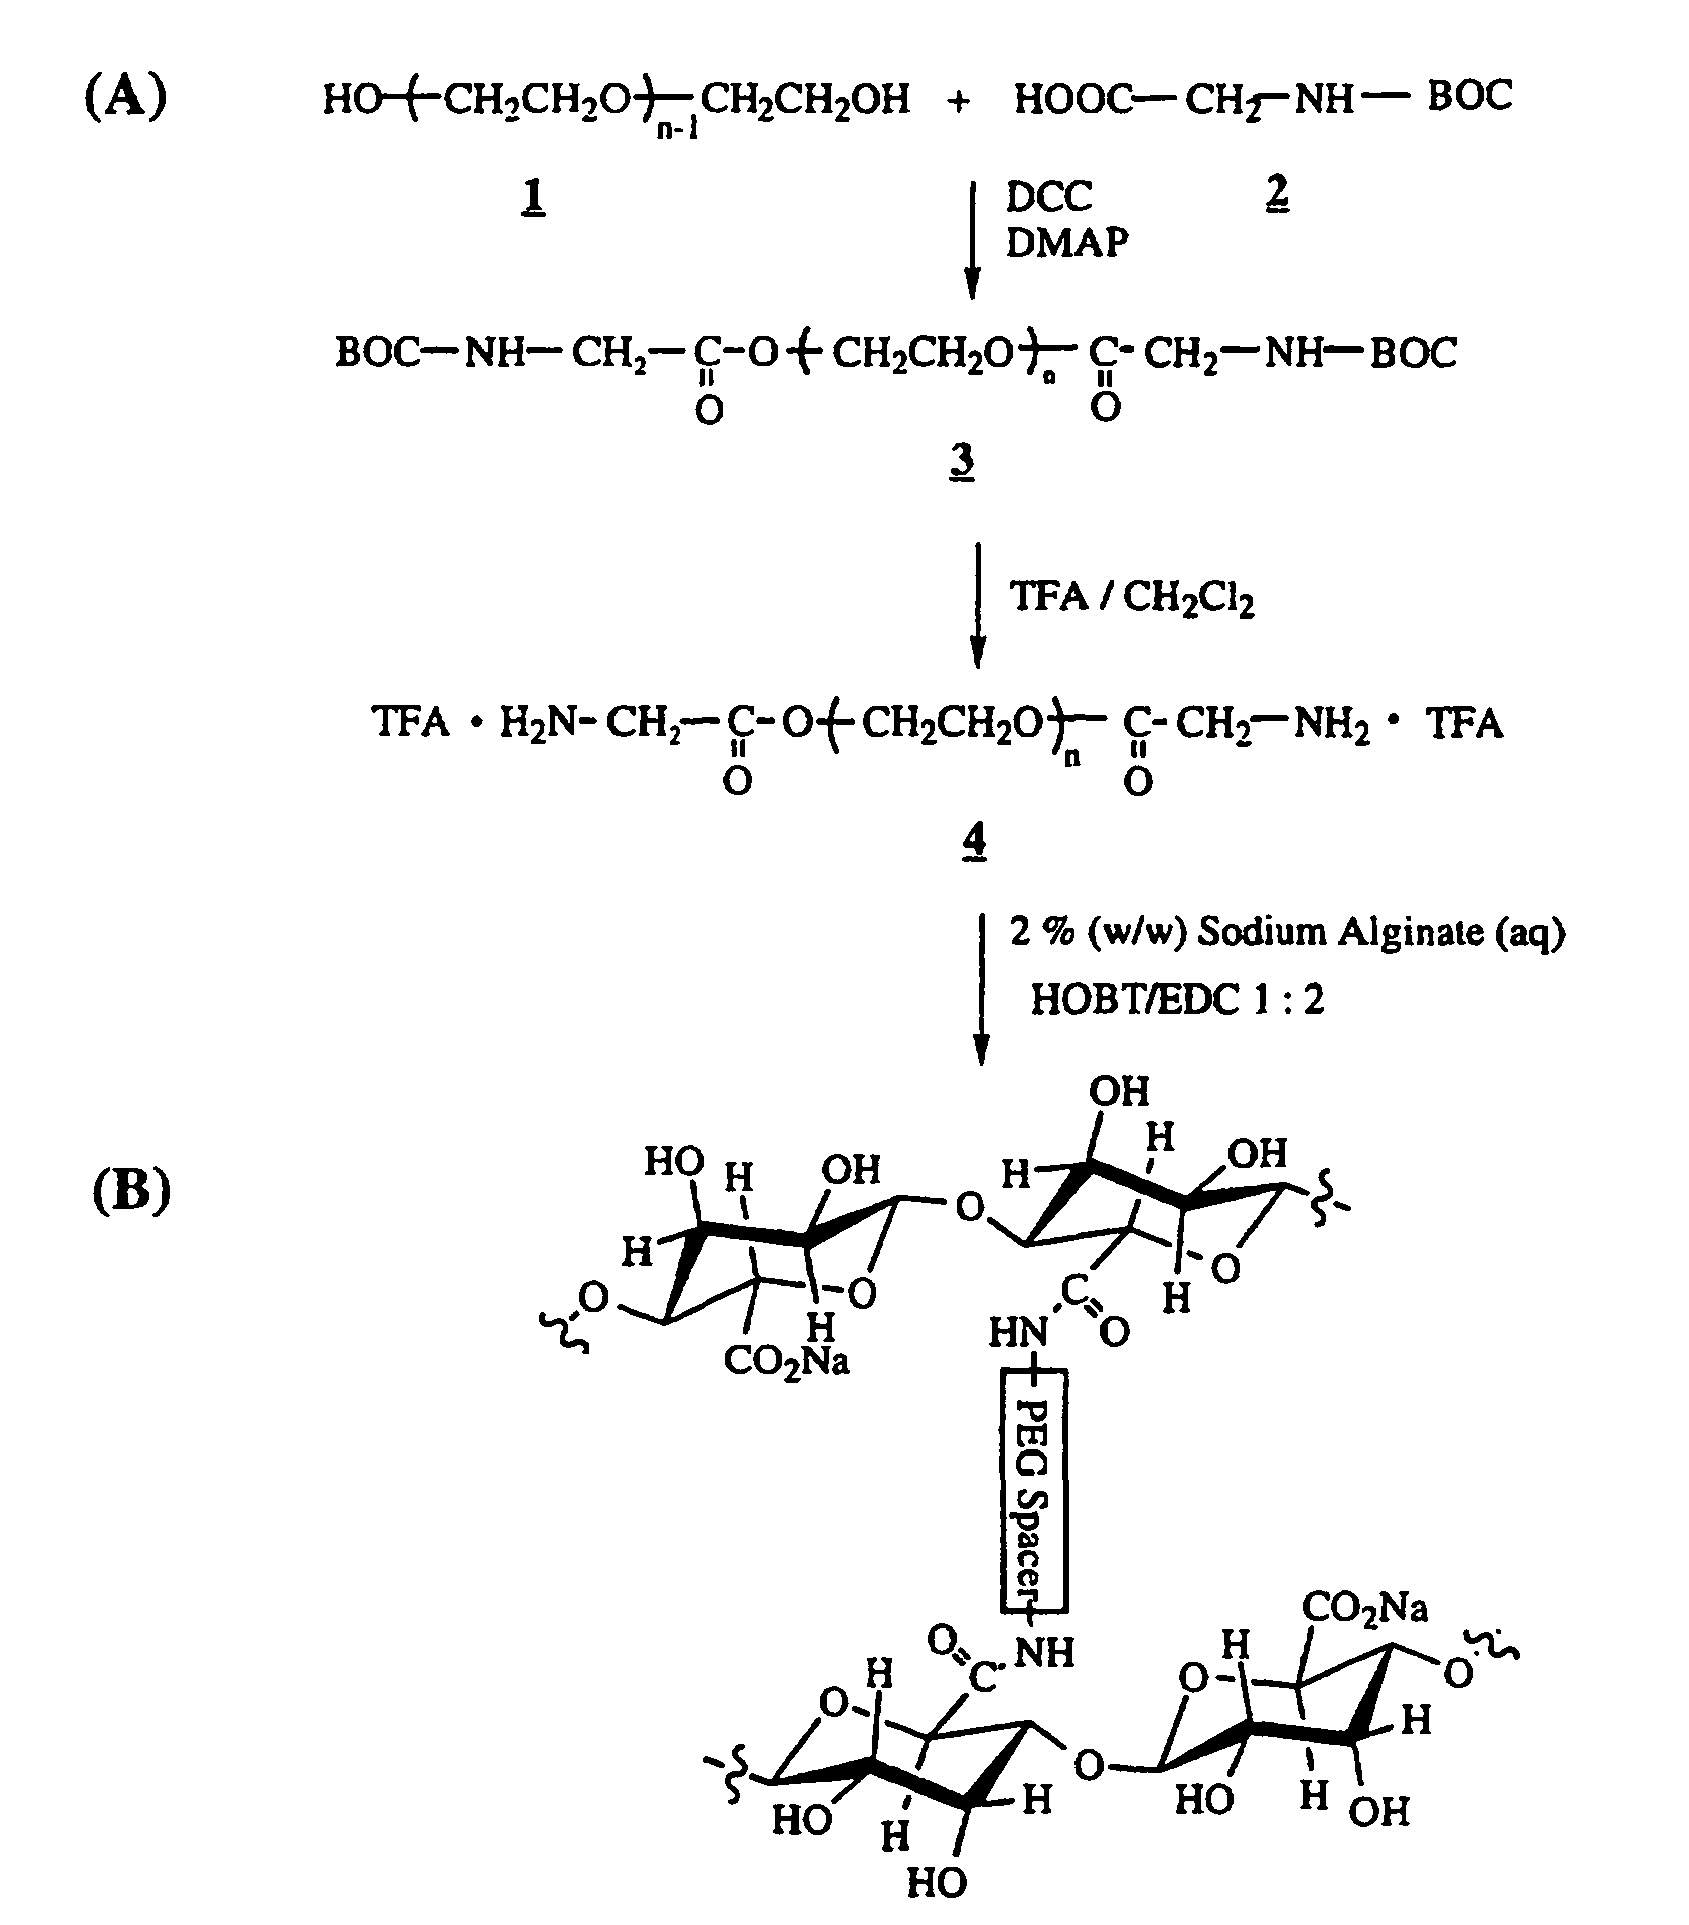 POLYMERS CONTAINING POLYSACCHARIDES SUCH AS ALGINATES OR